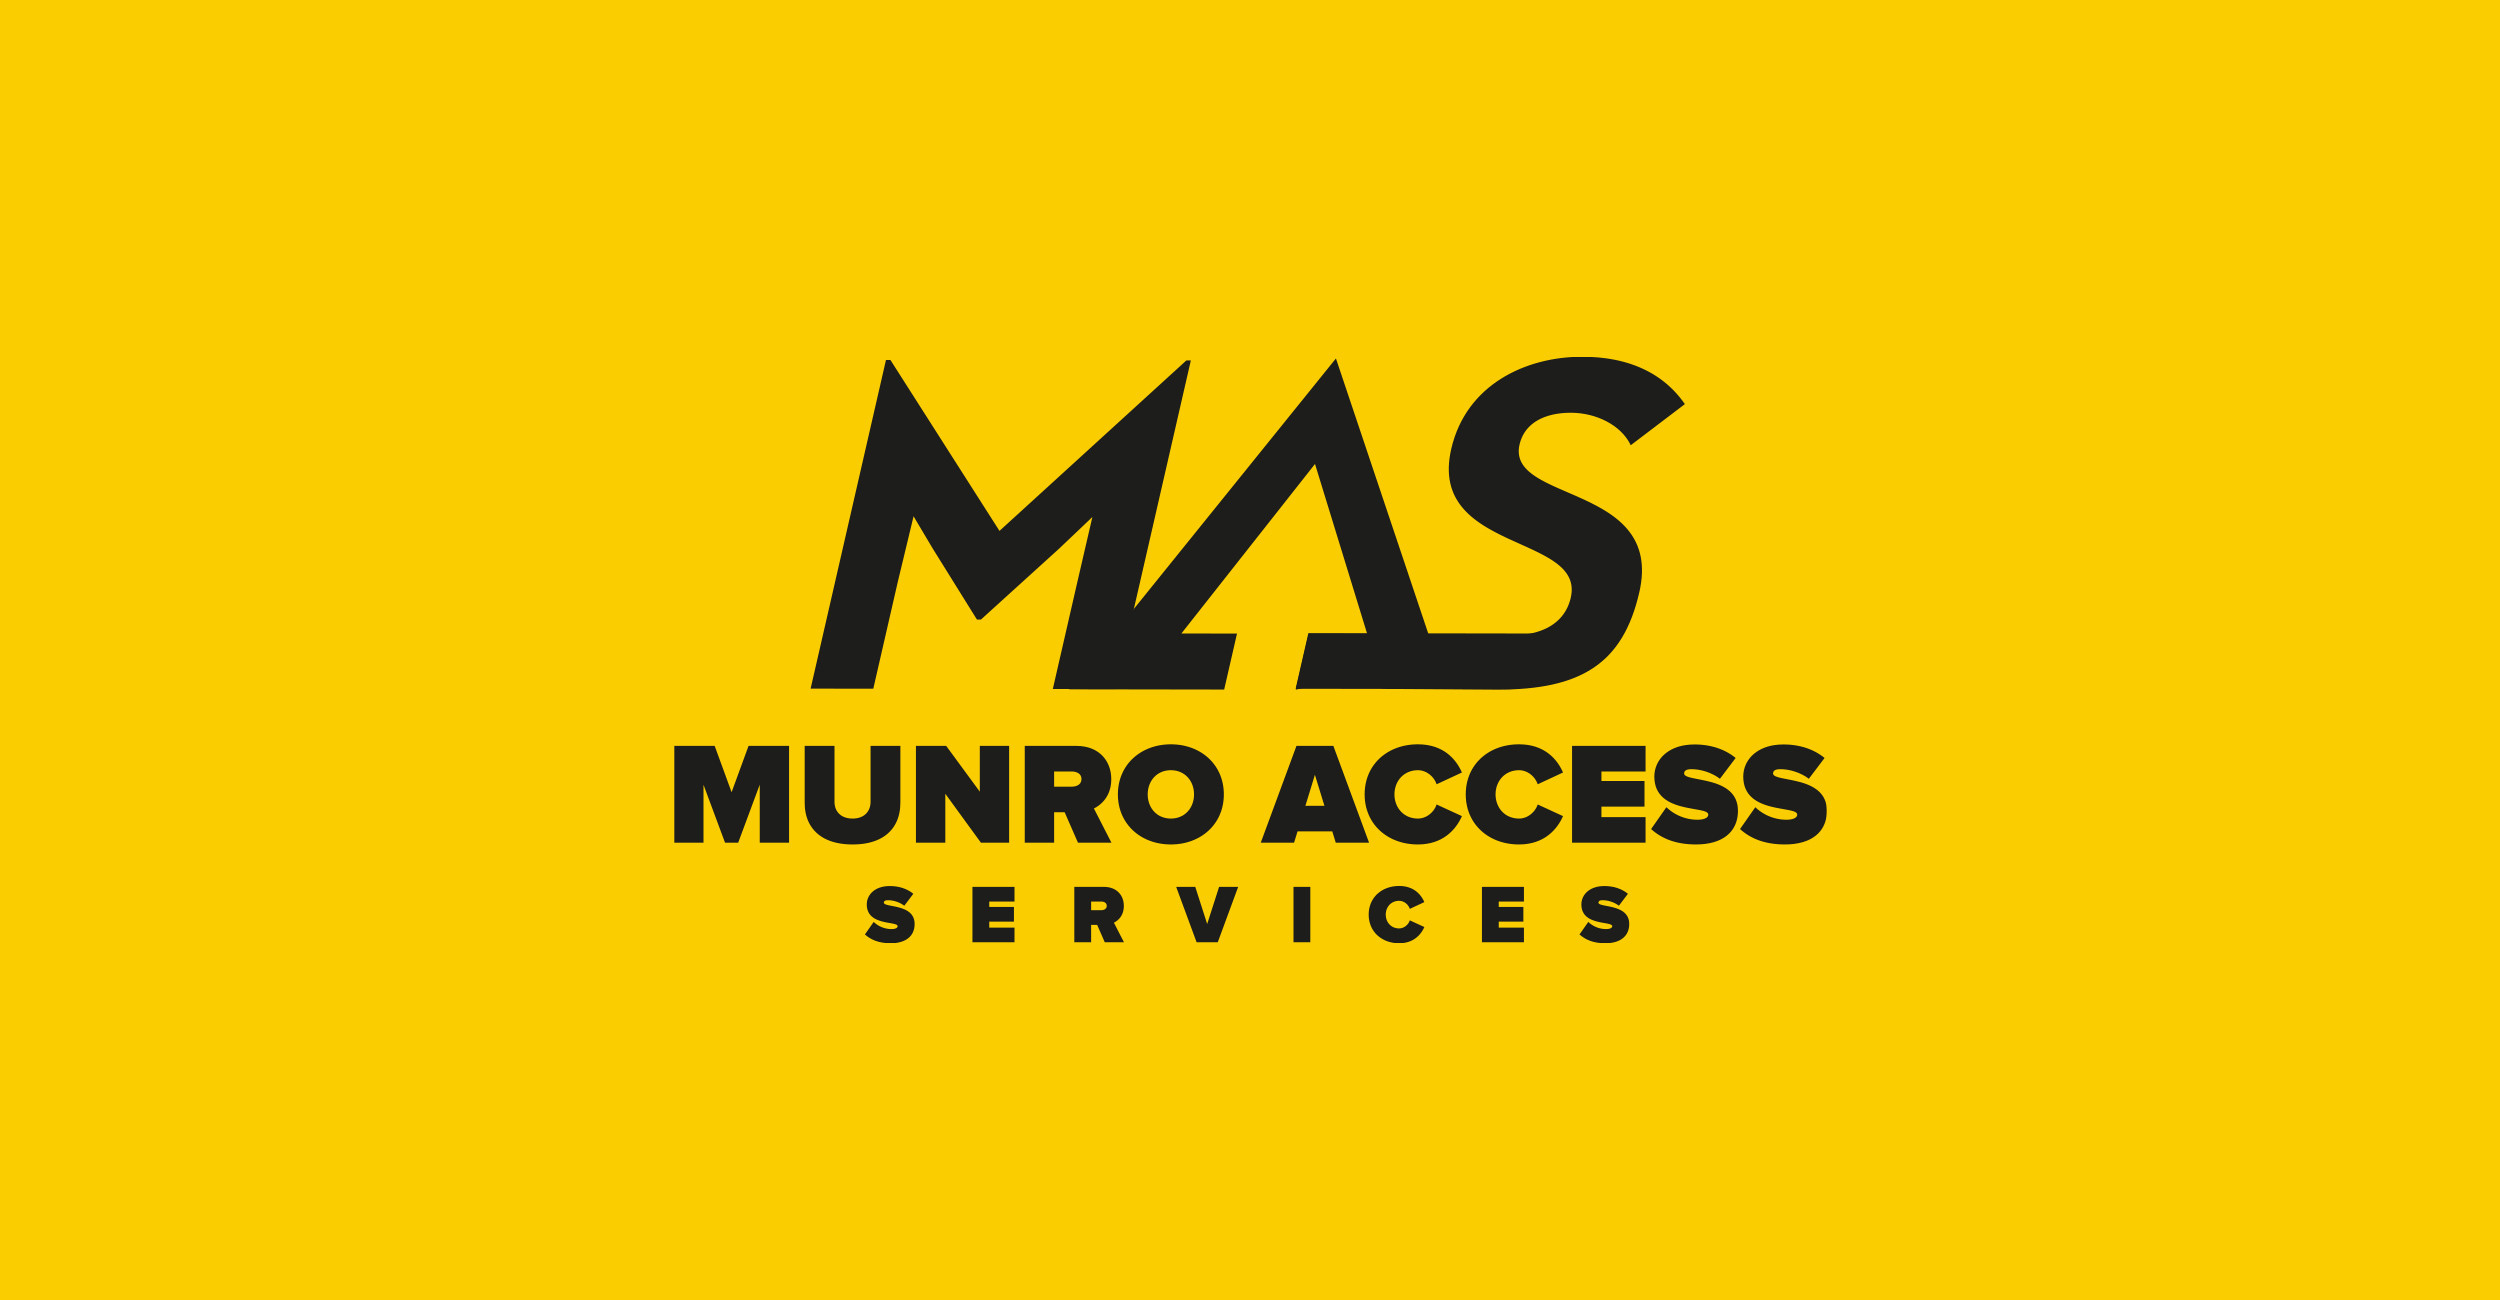 Munro Access Services